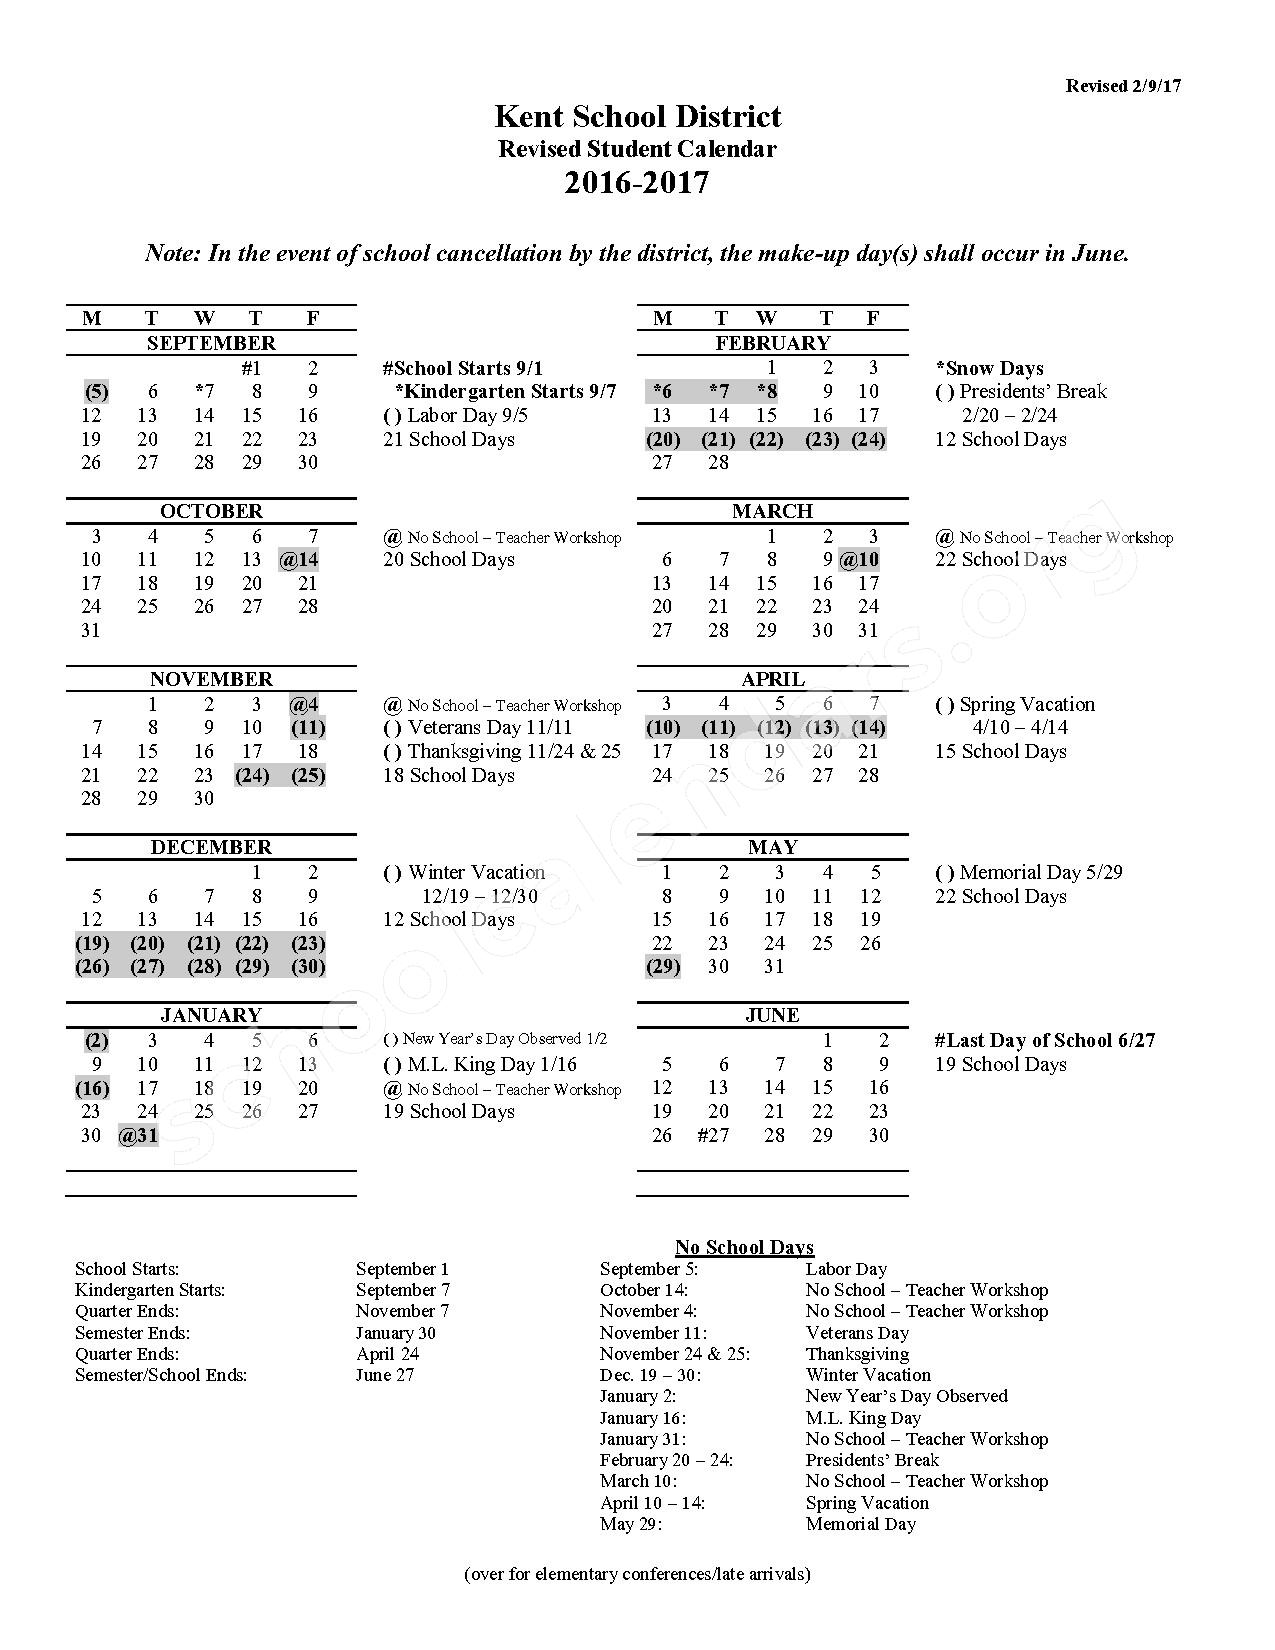 2016 - 2017 Student Calendar (Revised) – Kent Mountain View Academy – page 1